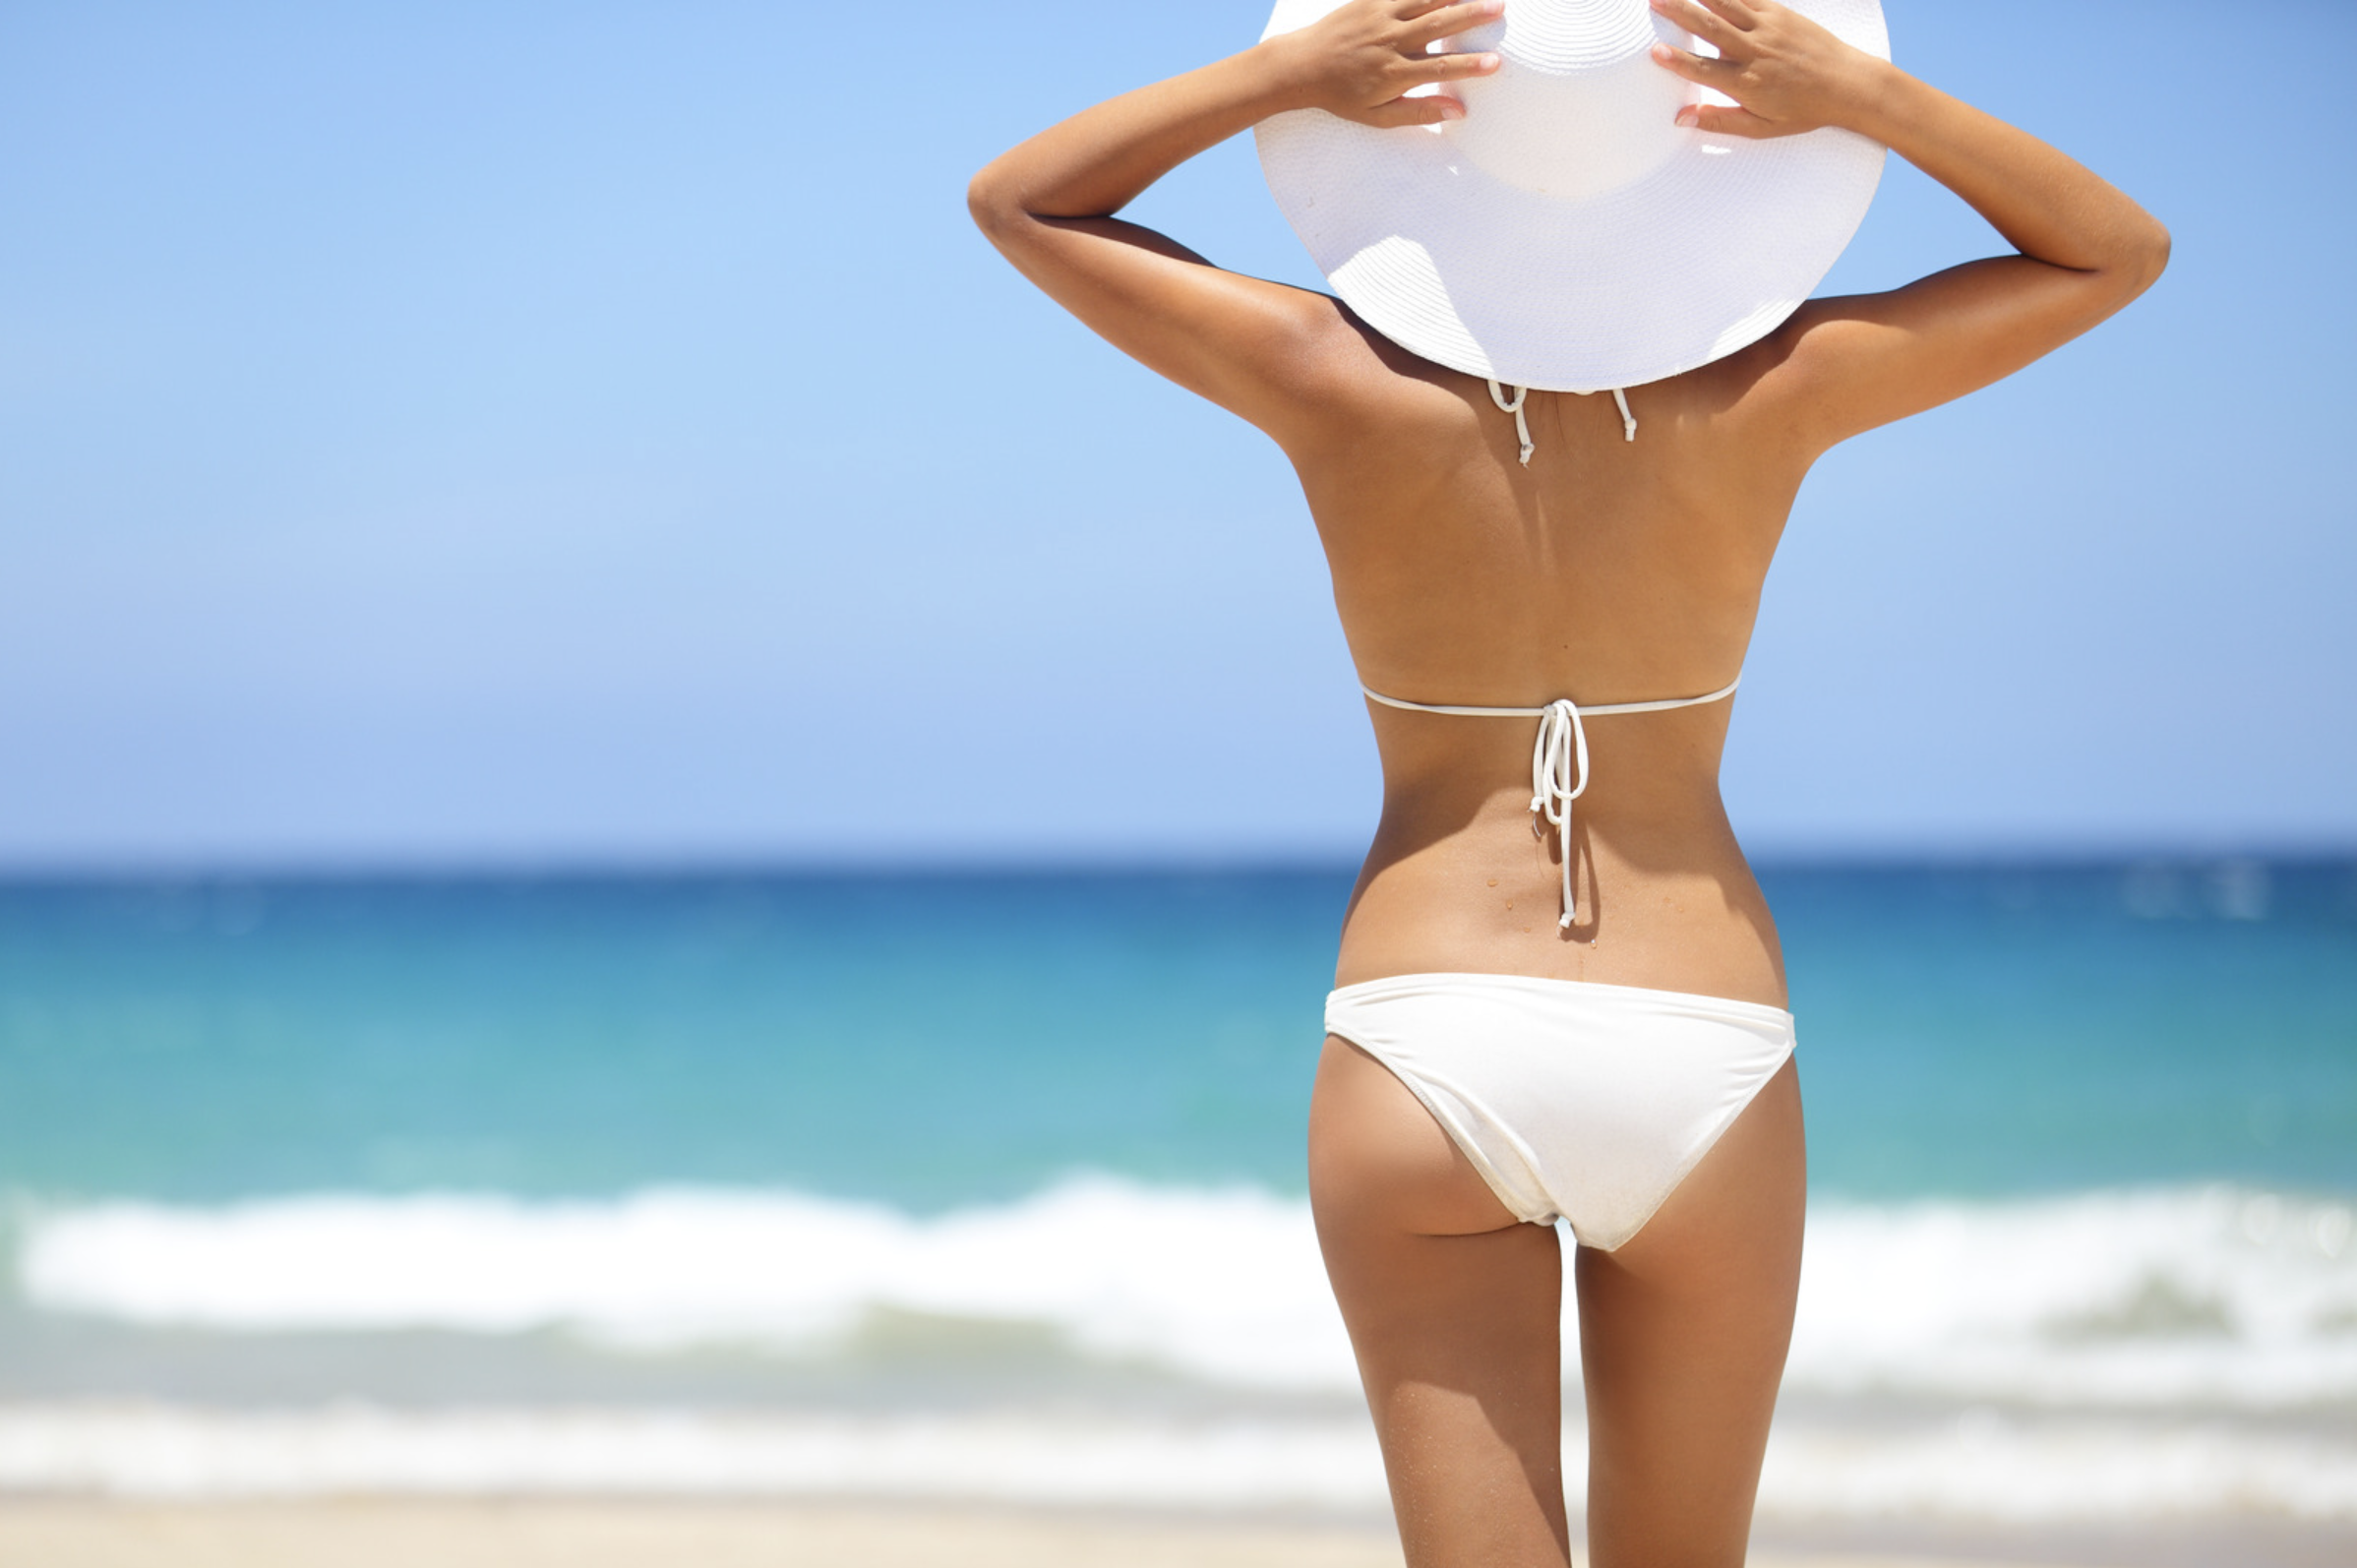 Woman in a white swimsuit and white hat